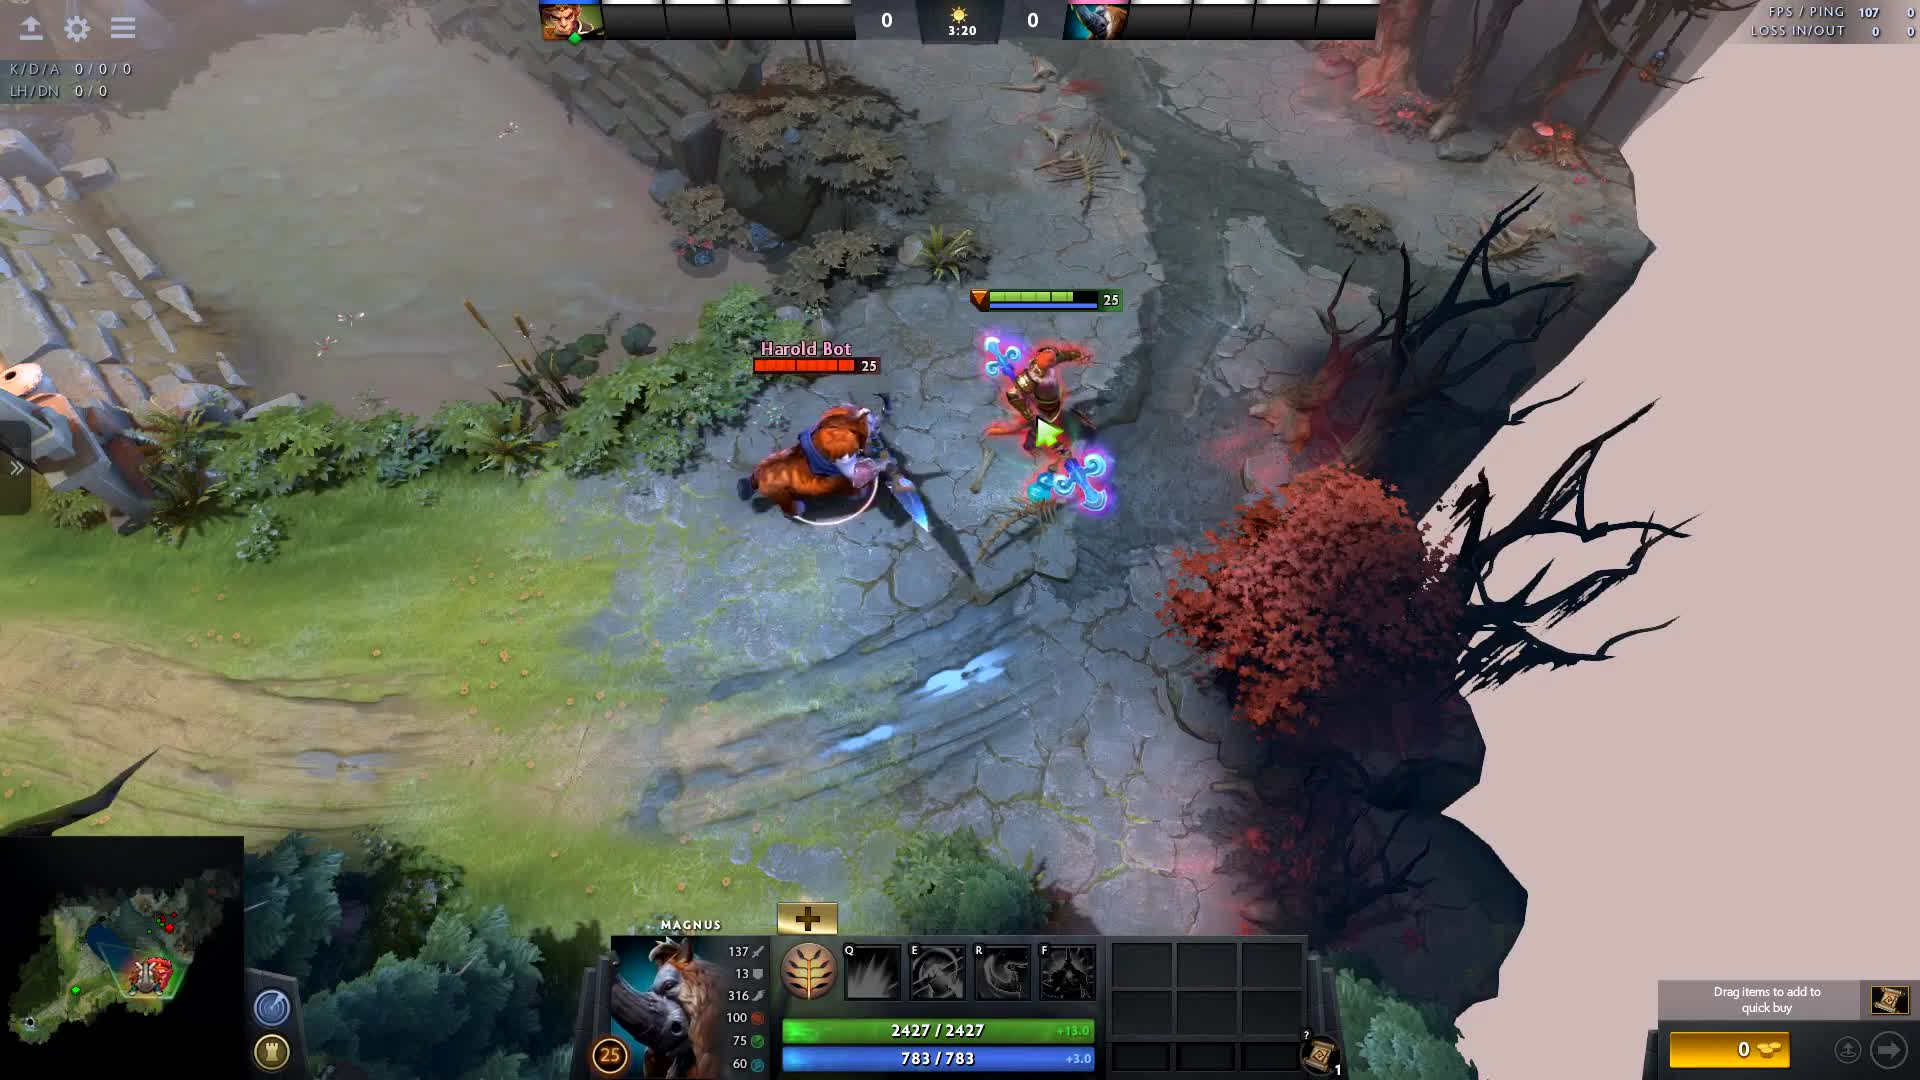 Dota 2 Patch Update Gifs Search | Search & Share on Homdor